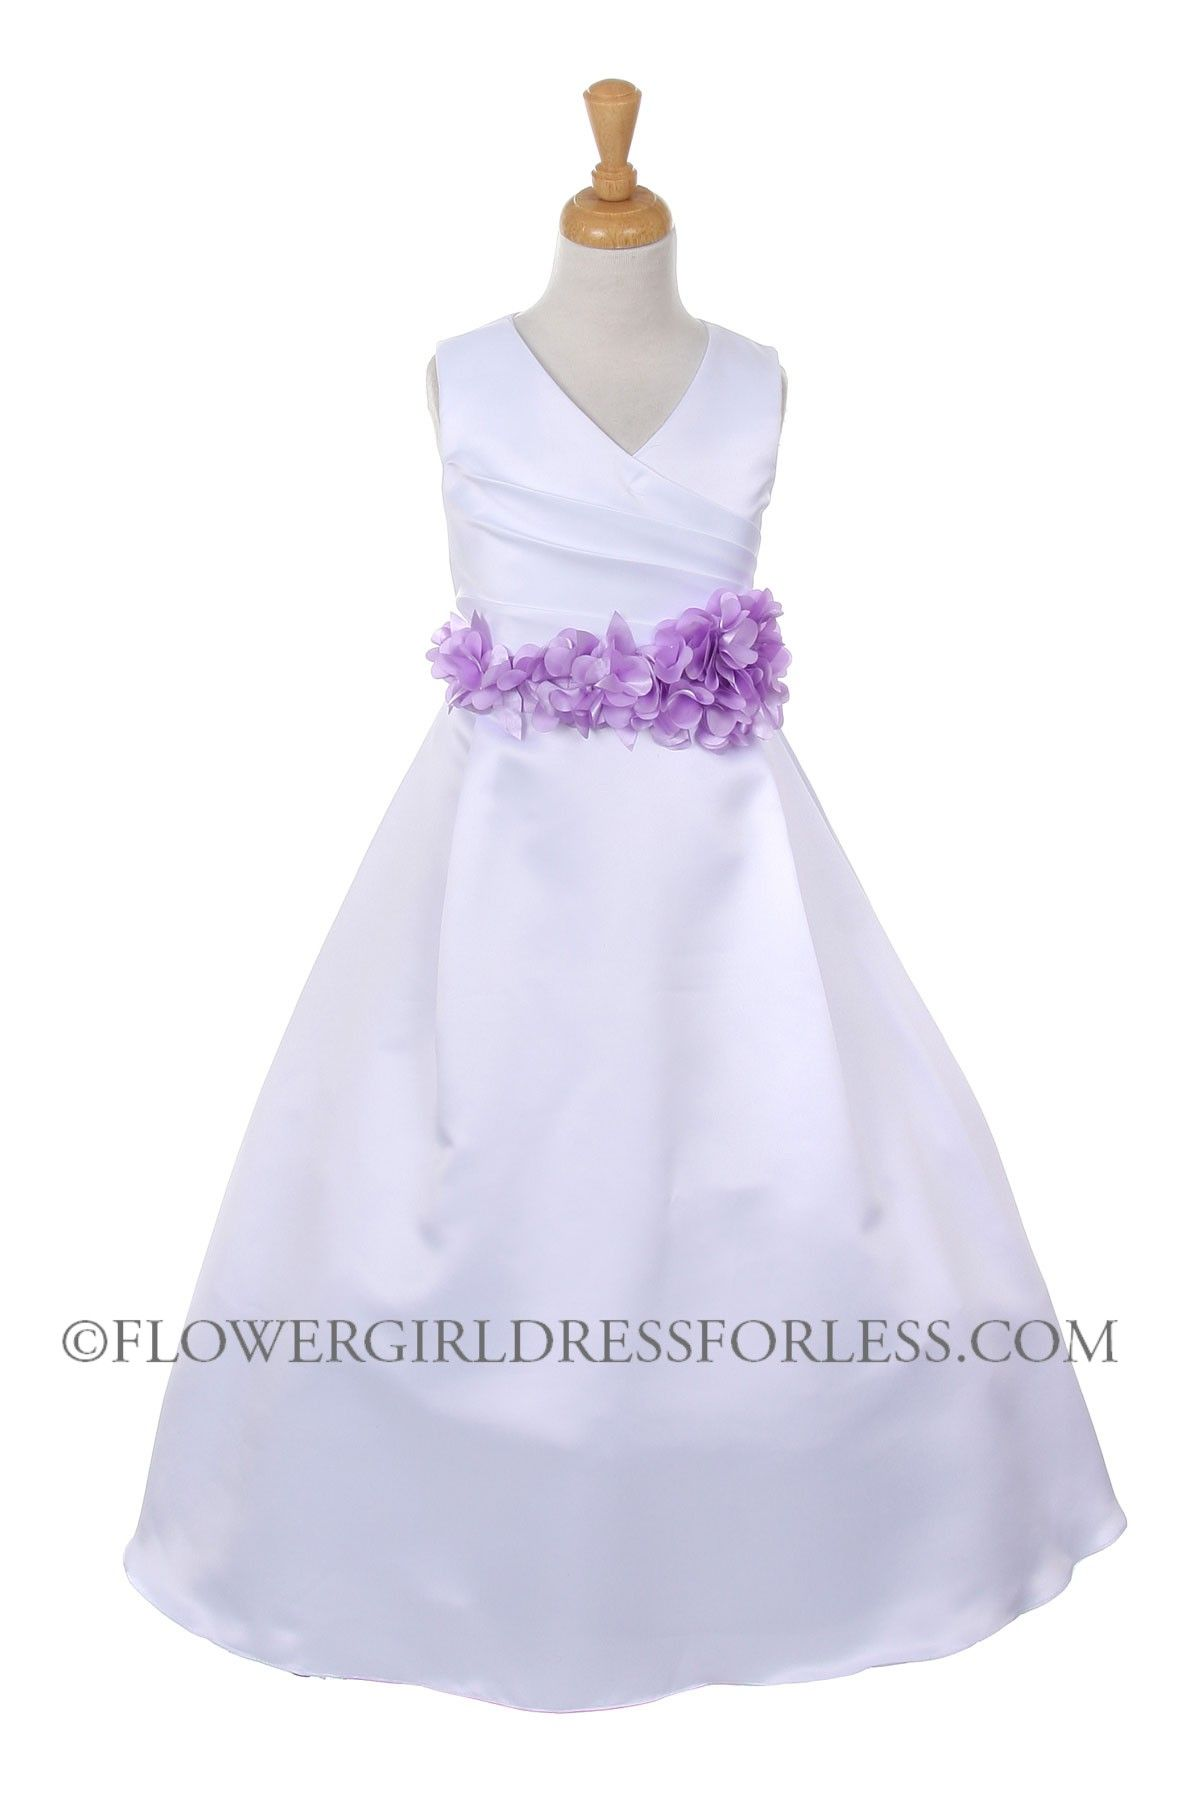 25ee33f605e Girls Dress Style 1186- Choice of WHITE or IVORY Dress with Lavender Sash   45.99